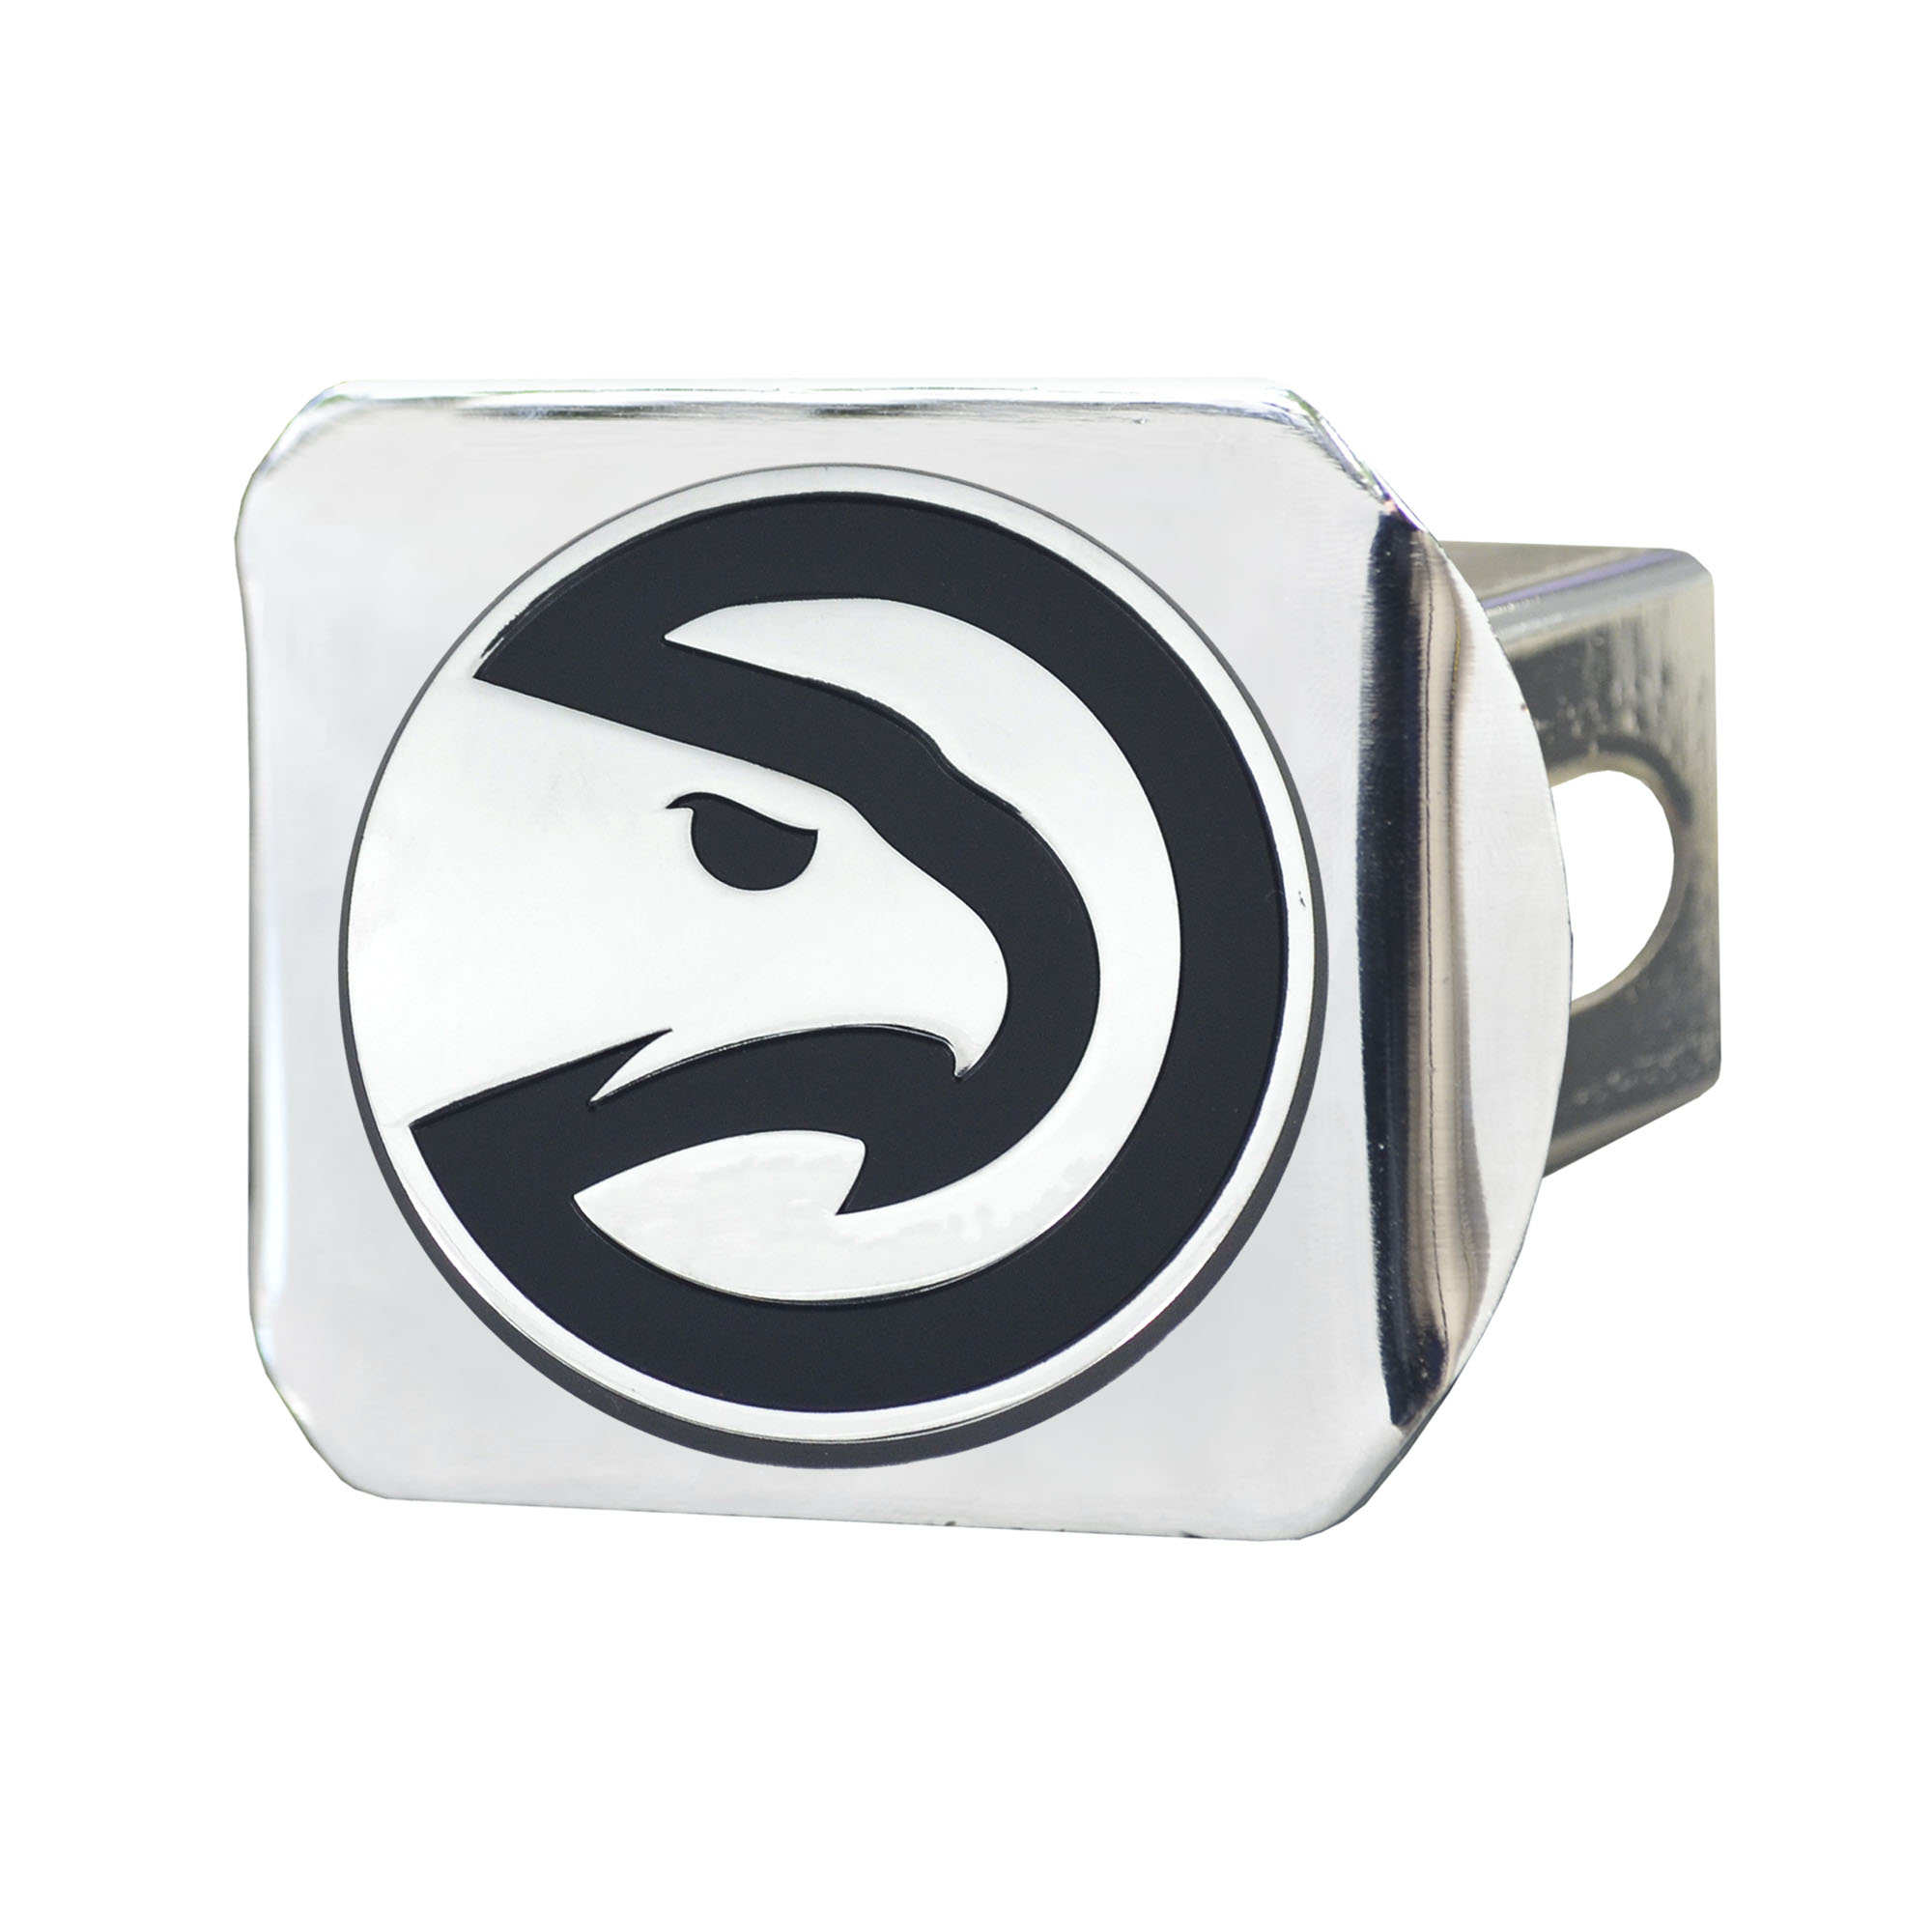 NBA Atlanta Hawks Chrome Hitch Cover Automotive Accessory